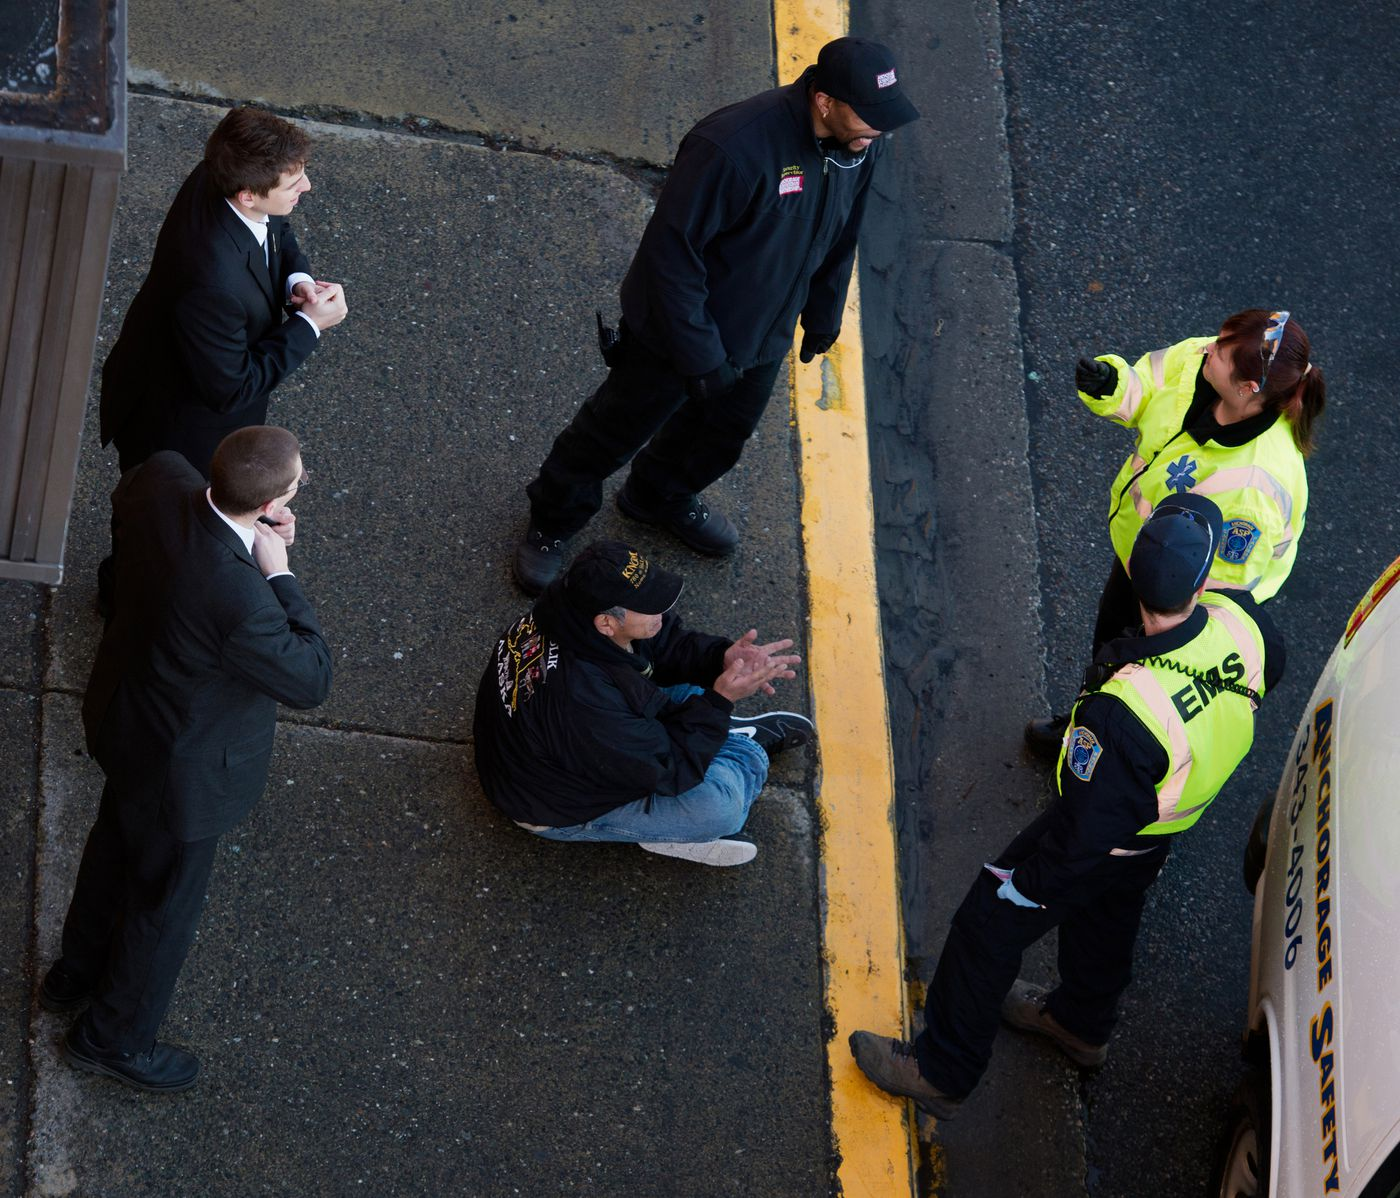 "Anchorage Safety Patrol staff members Pam Garner, top right, and Garrett Sey talk with security staff outside the Hotel Captain Cook before transporting a man to the Anchorage Safety Center. ""The worst part is not being able to help them, and seeing that a lot of them do want to get help but they don't want to reach out,"" Garner said. Photographed on Wednesday, November 19, 2014. Marc Lester / ADN"